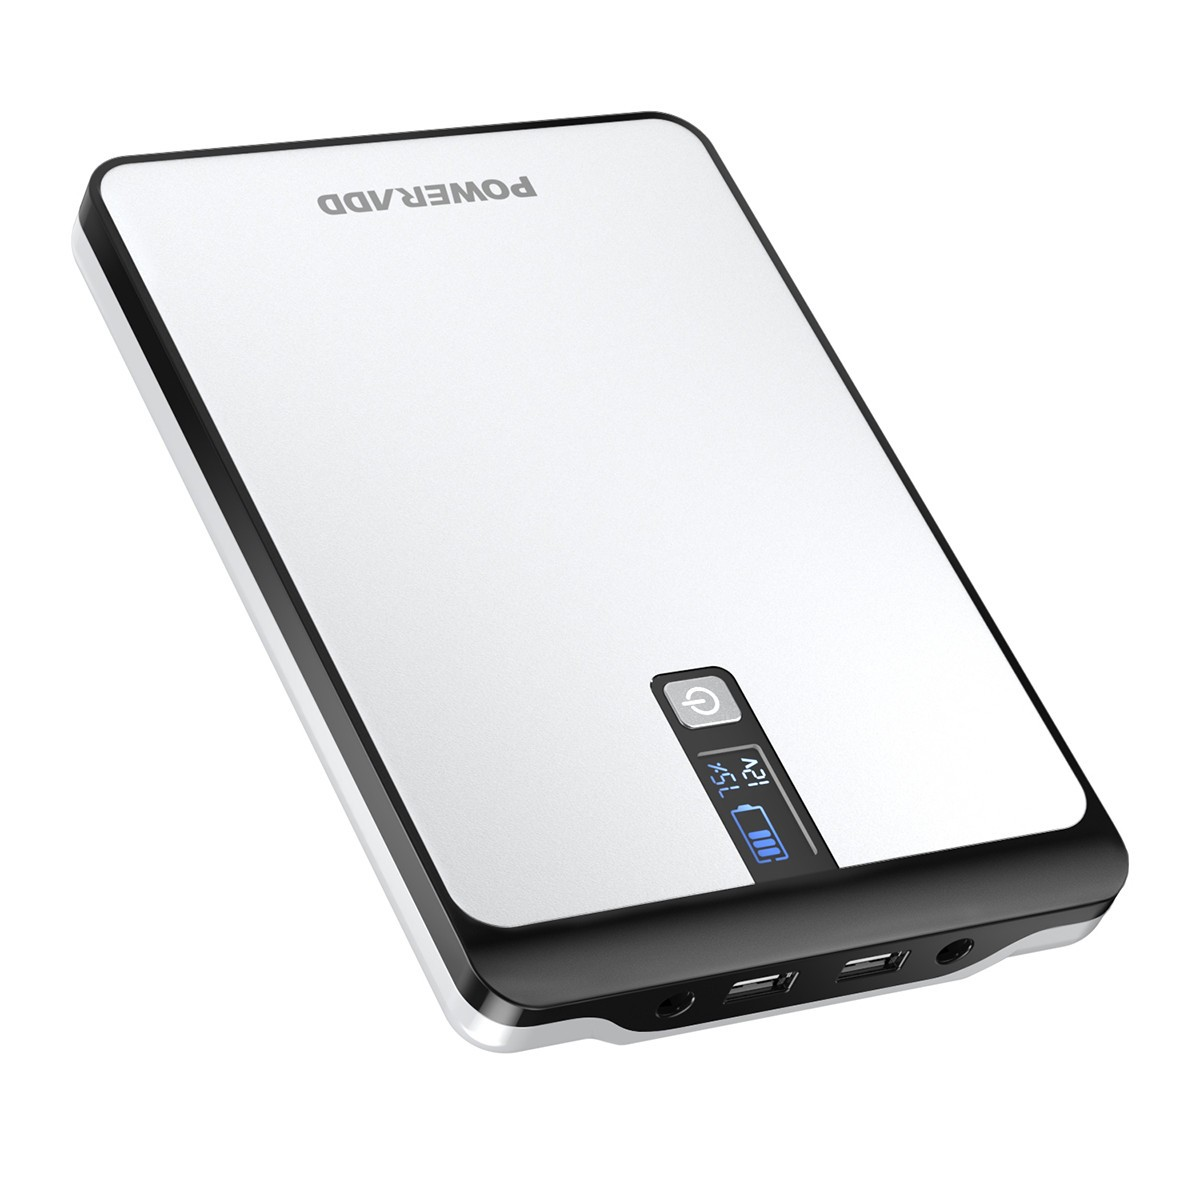 Poweradd『Pilot Pro2 23000mAh Portable Battery Charger for Laptops and USB Devices』